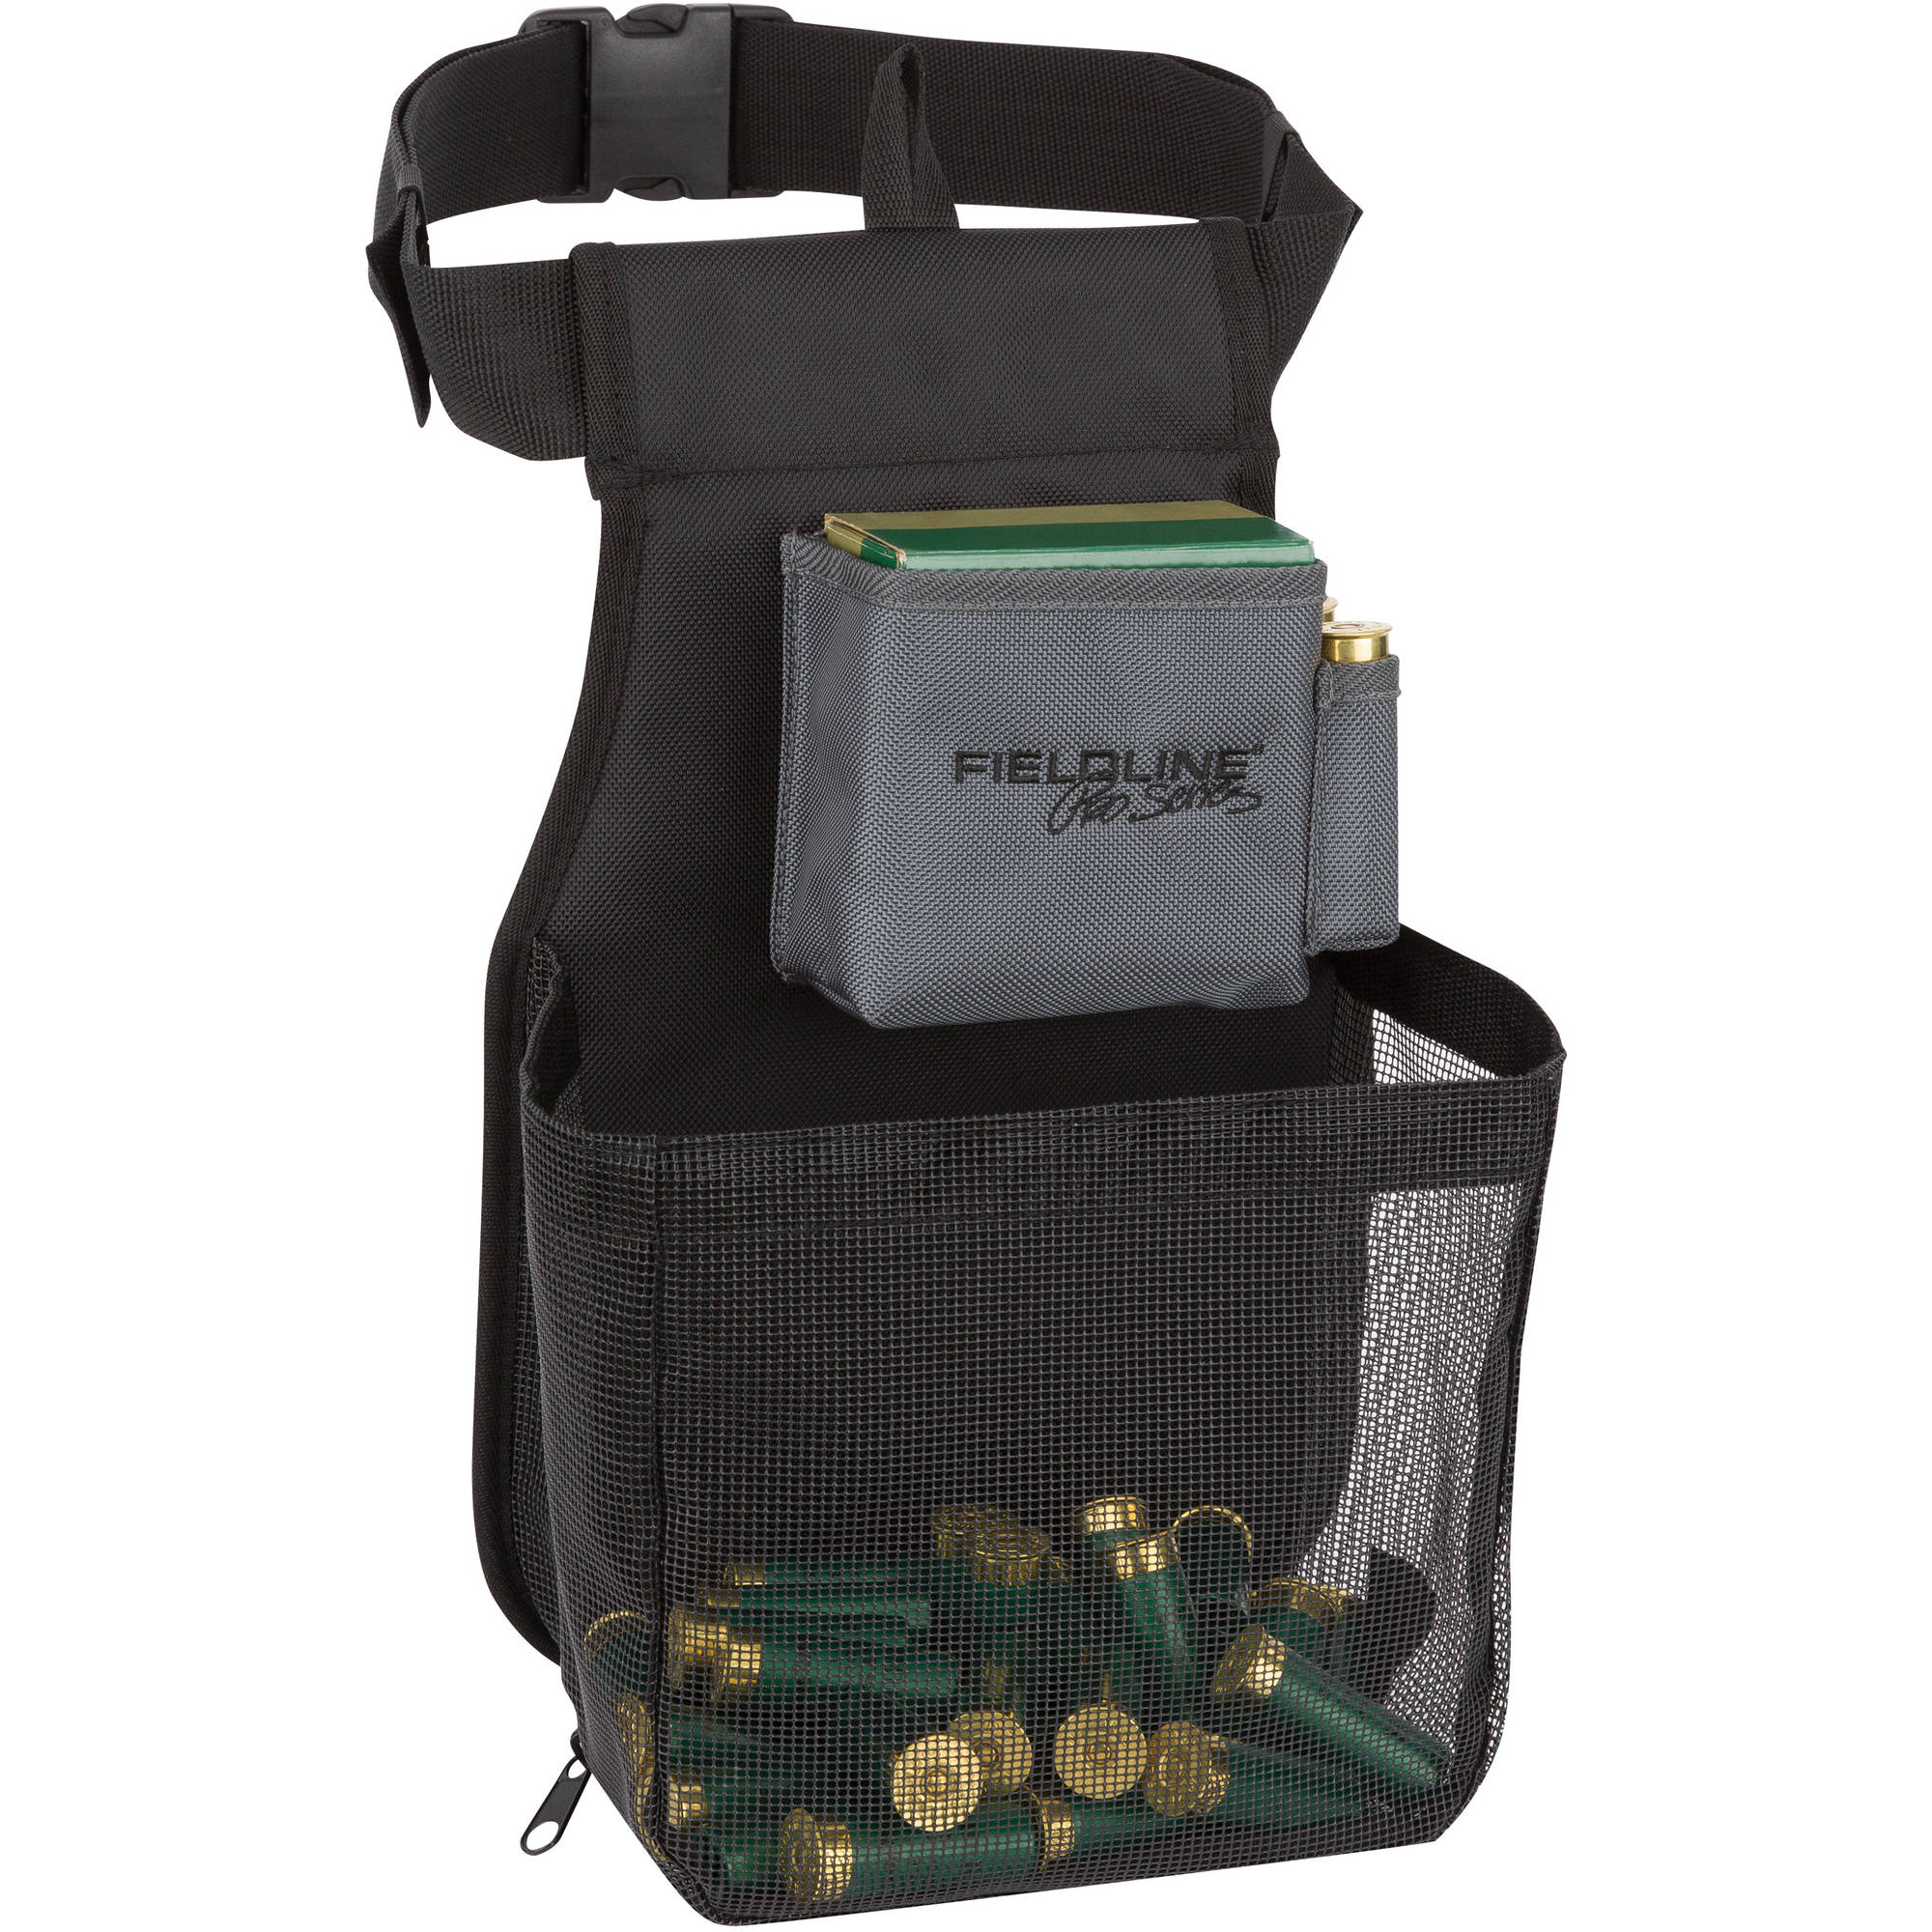 Fieldline Pro Series Large Trap Shell Pouch, Black/Grey, Shooting